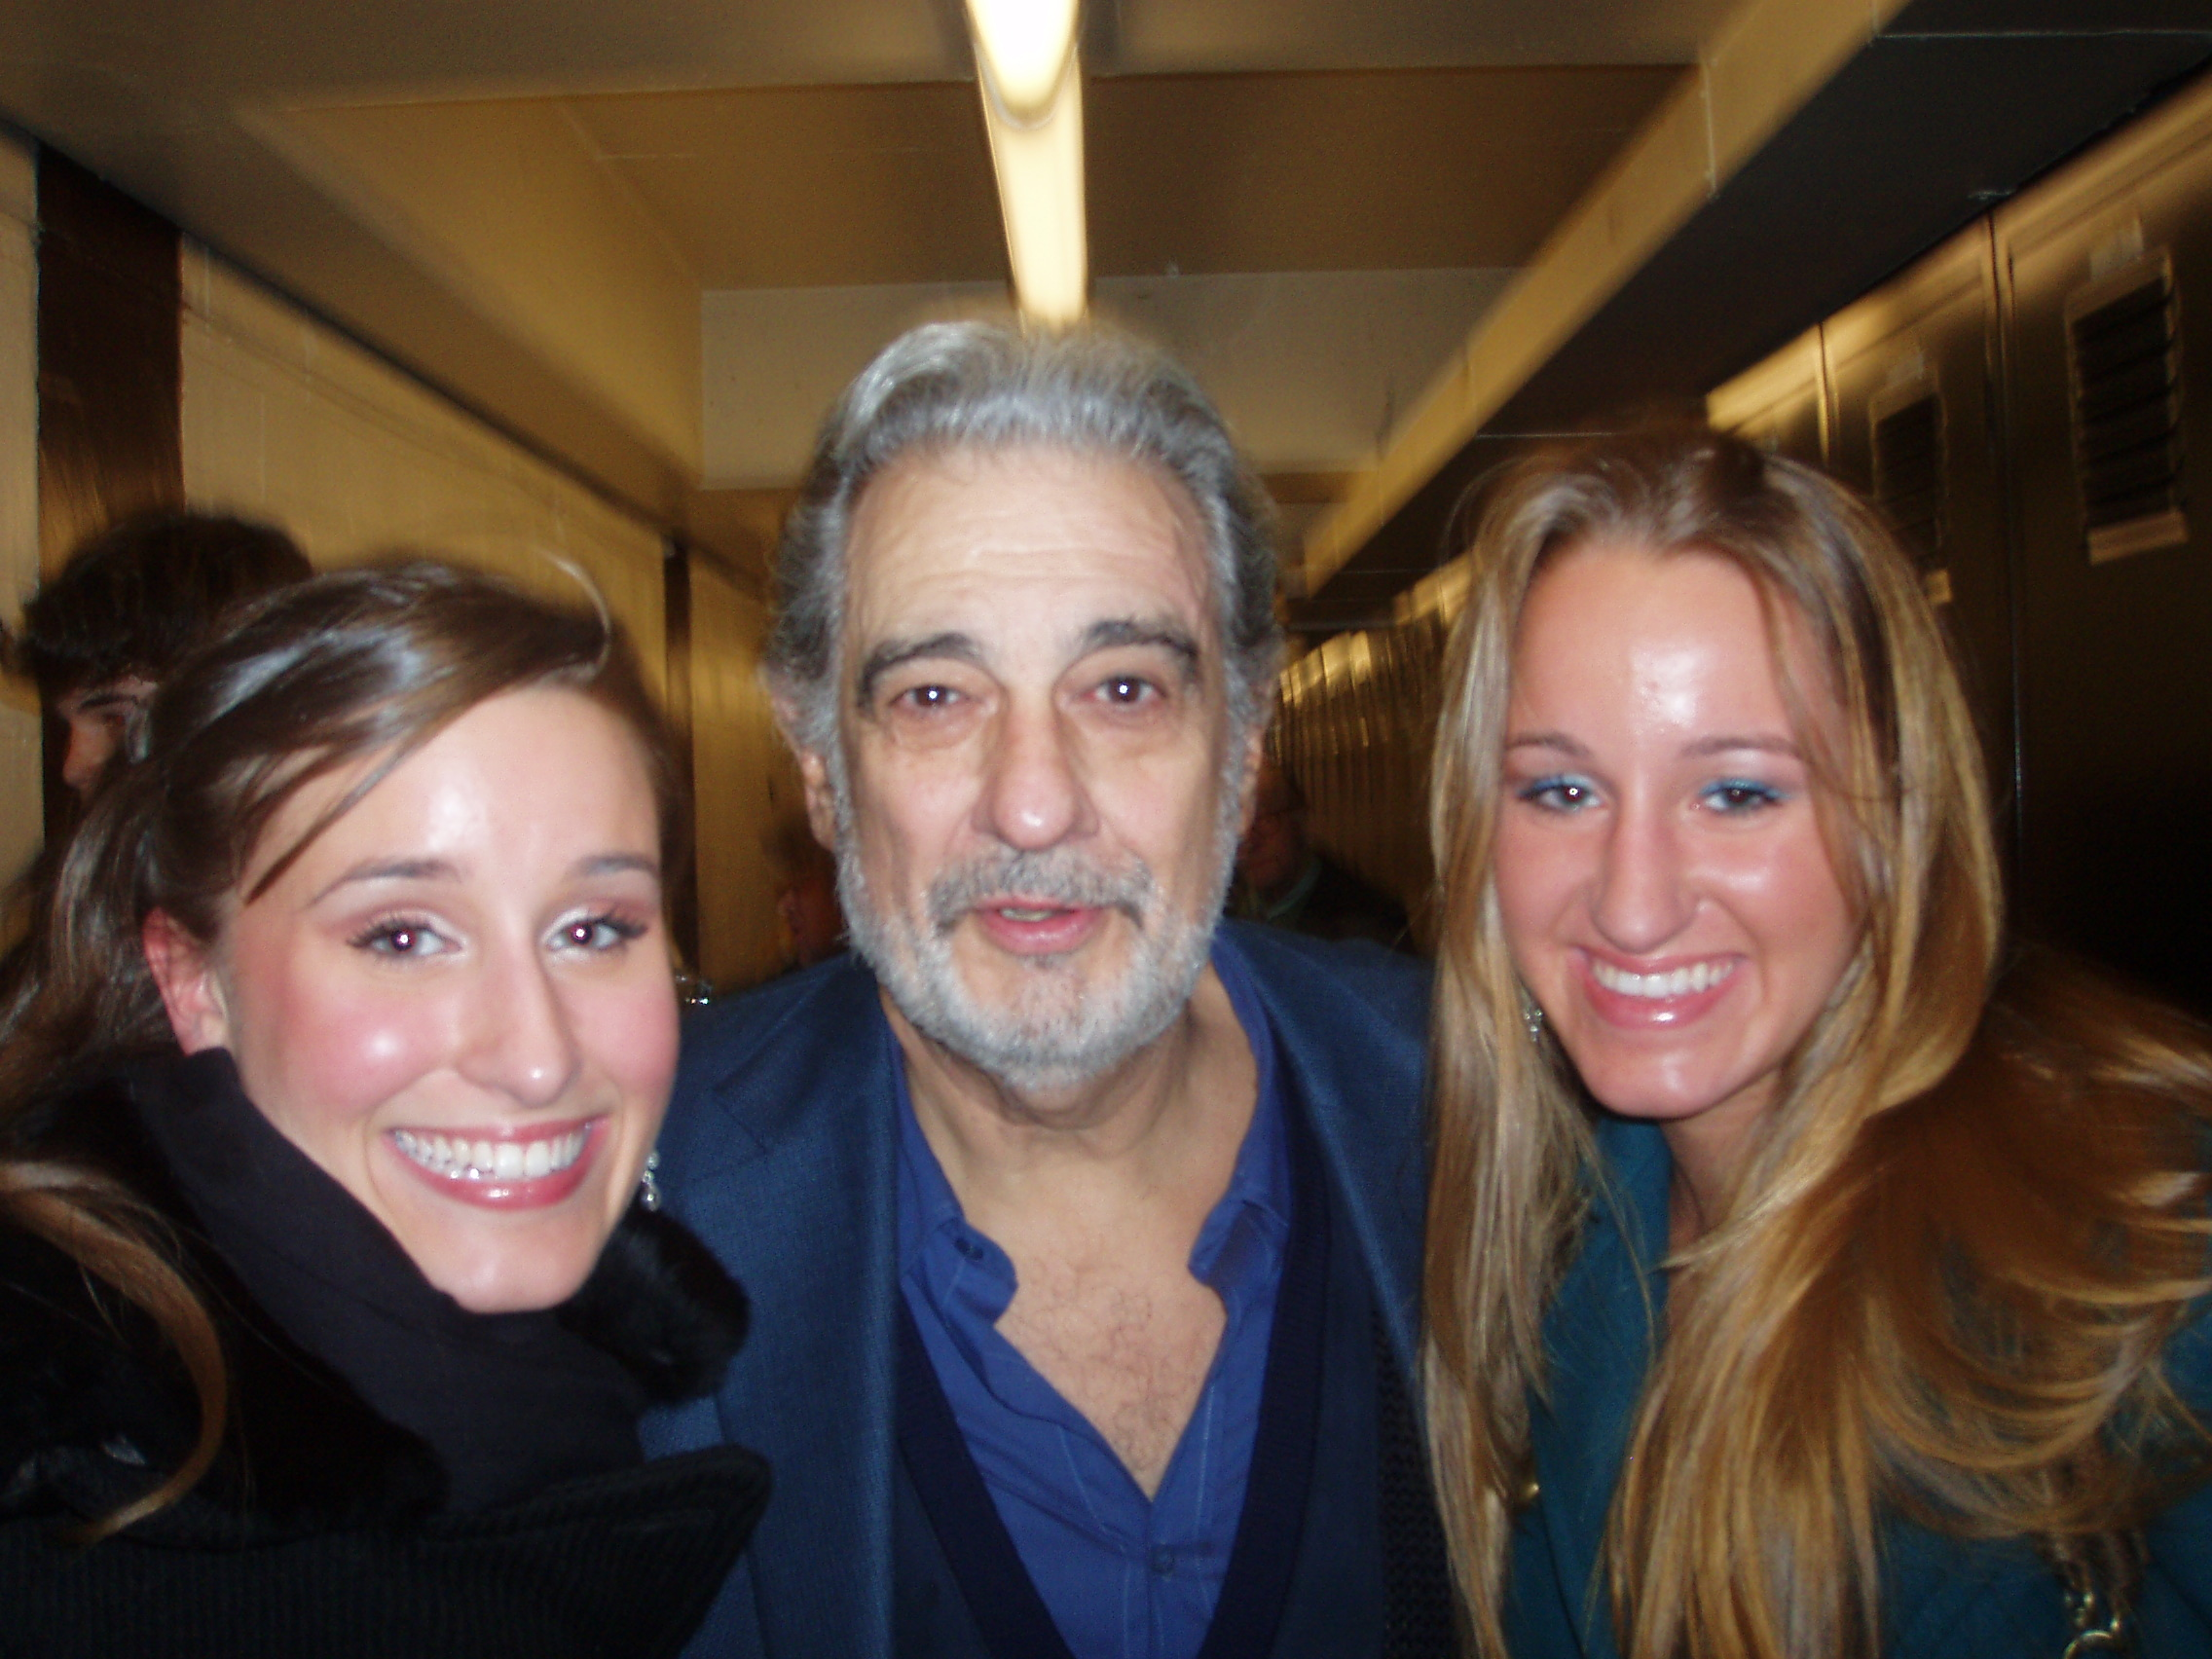 Lauren and her sister with Placido Domingo